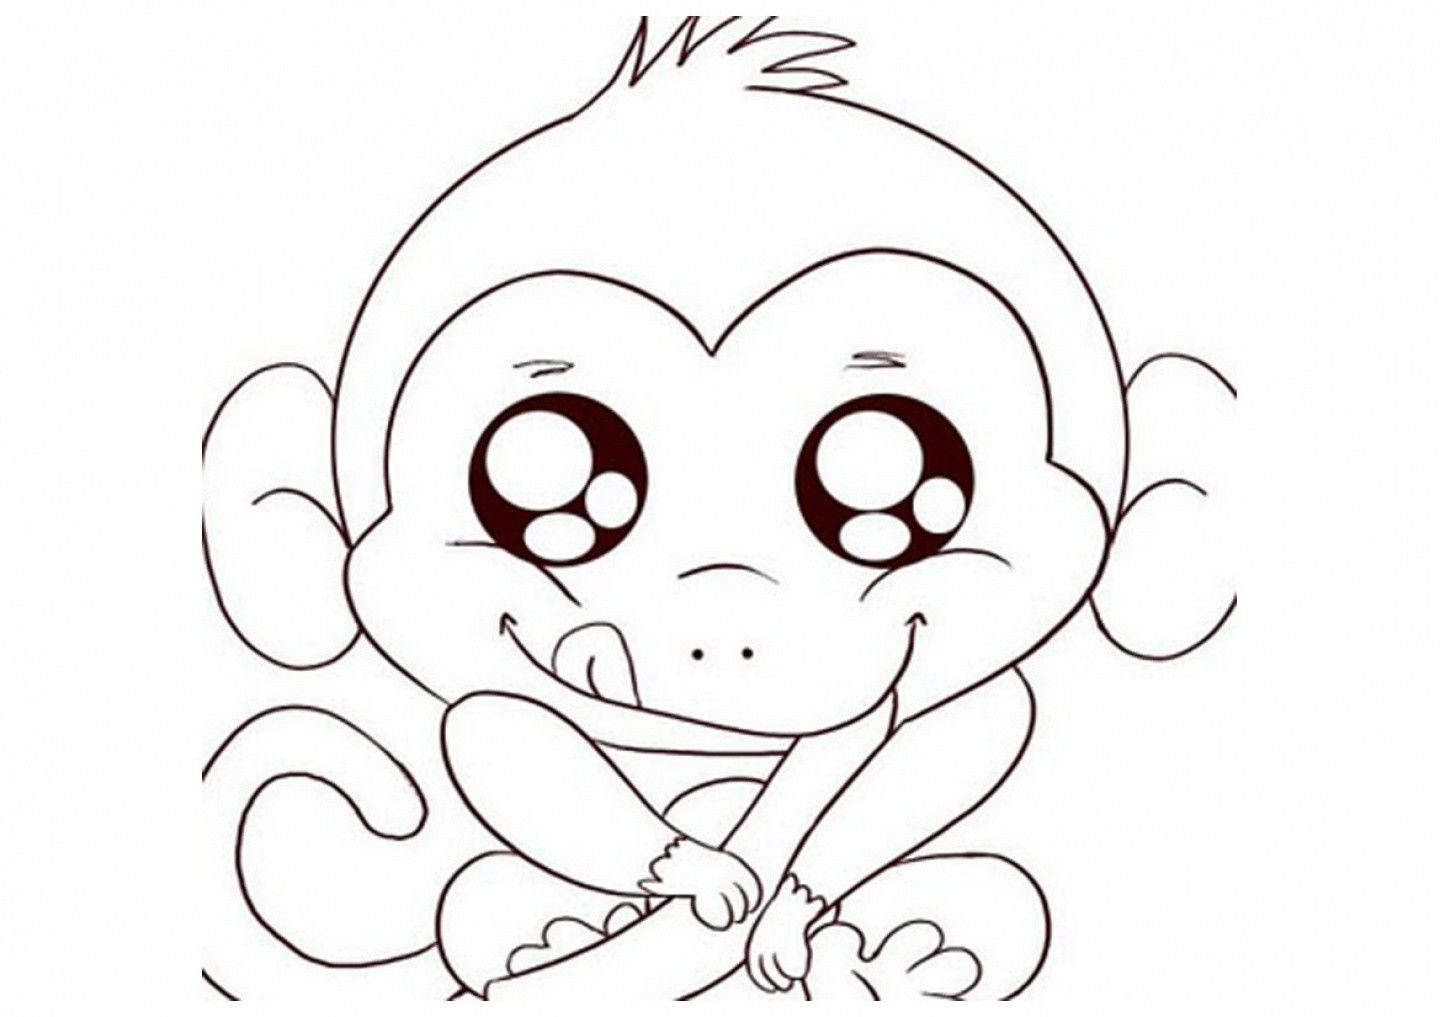 10 Images Of Monkey Coloring Pages Free Printable Coloring Images